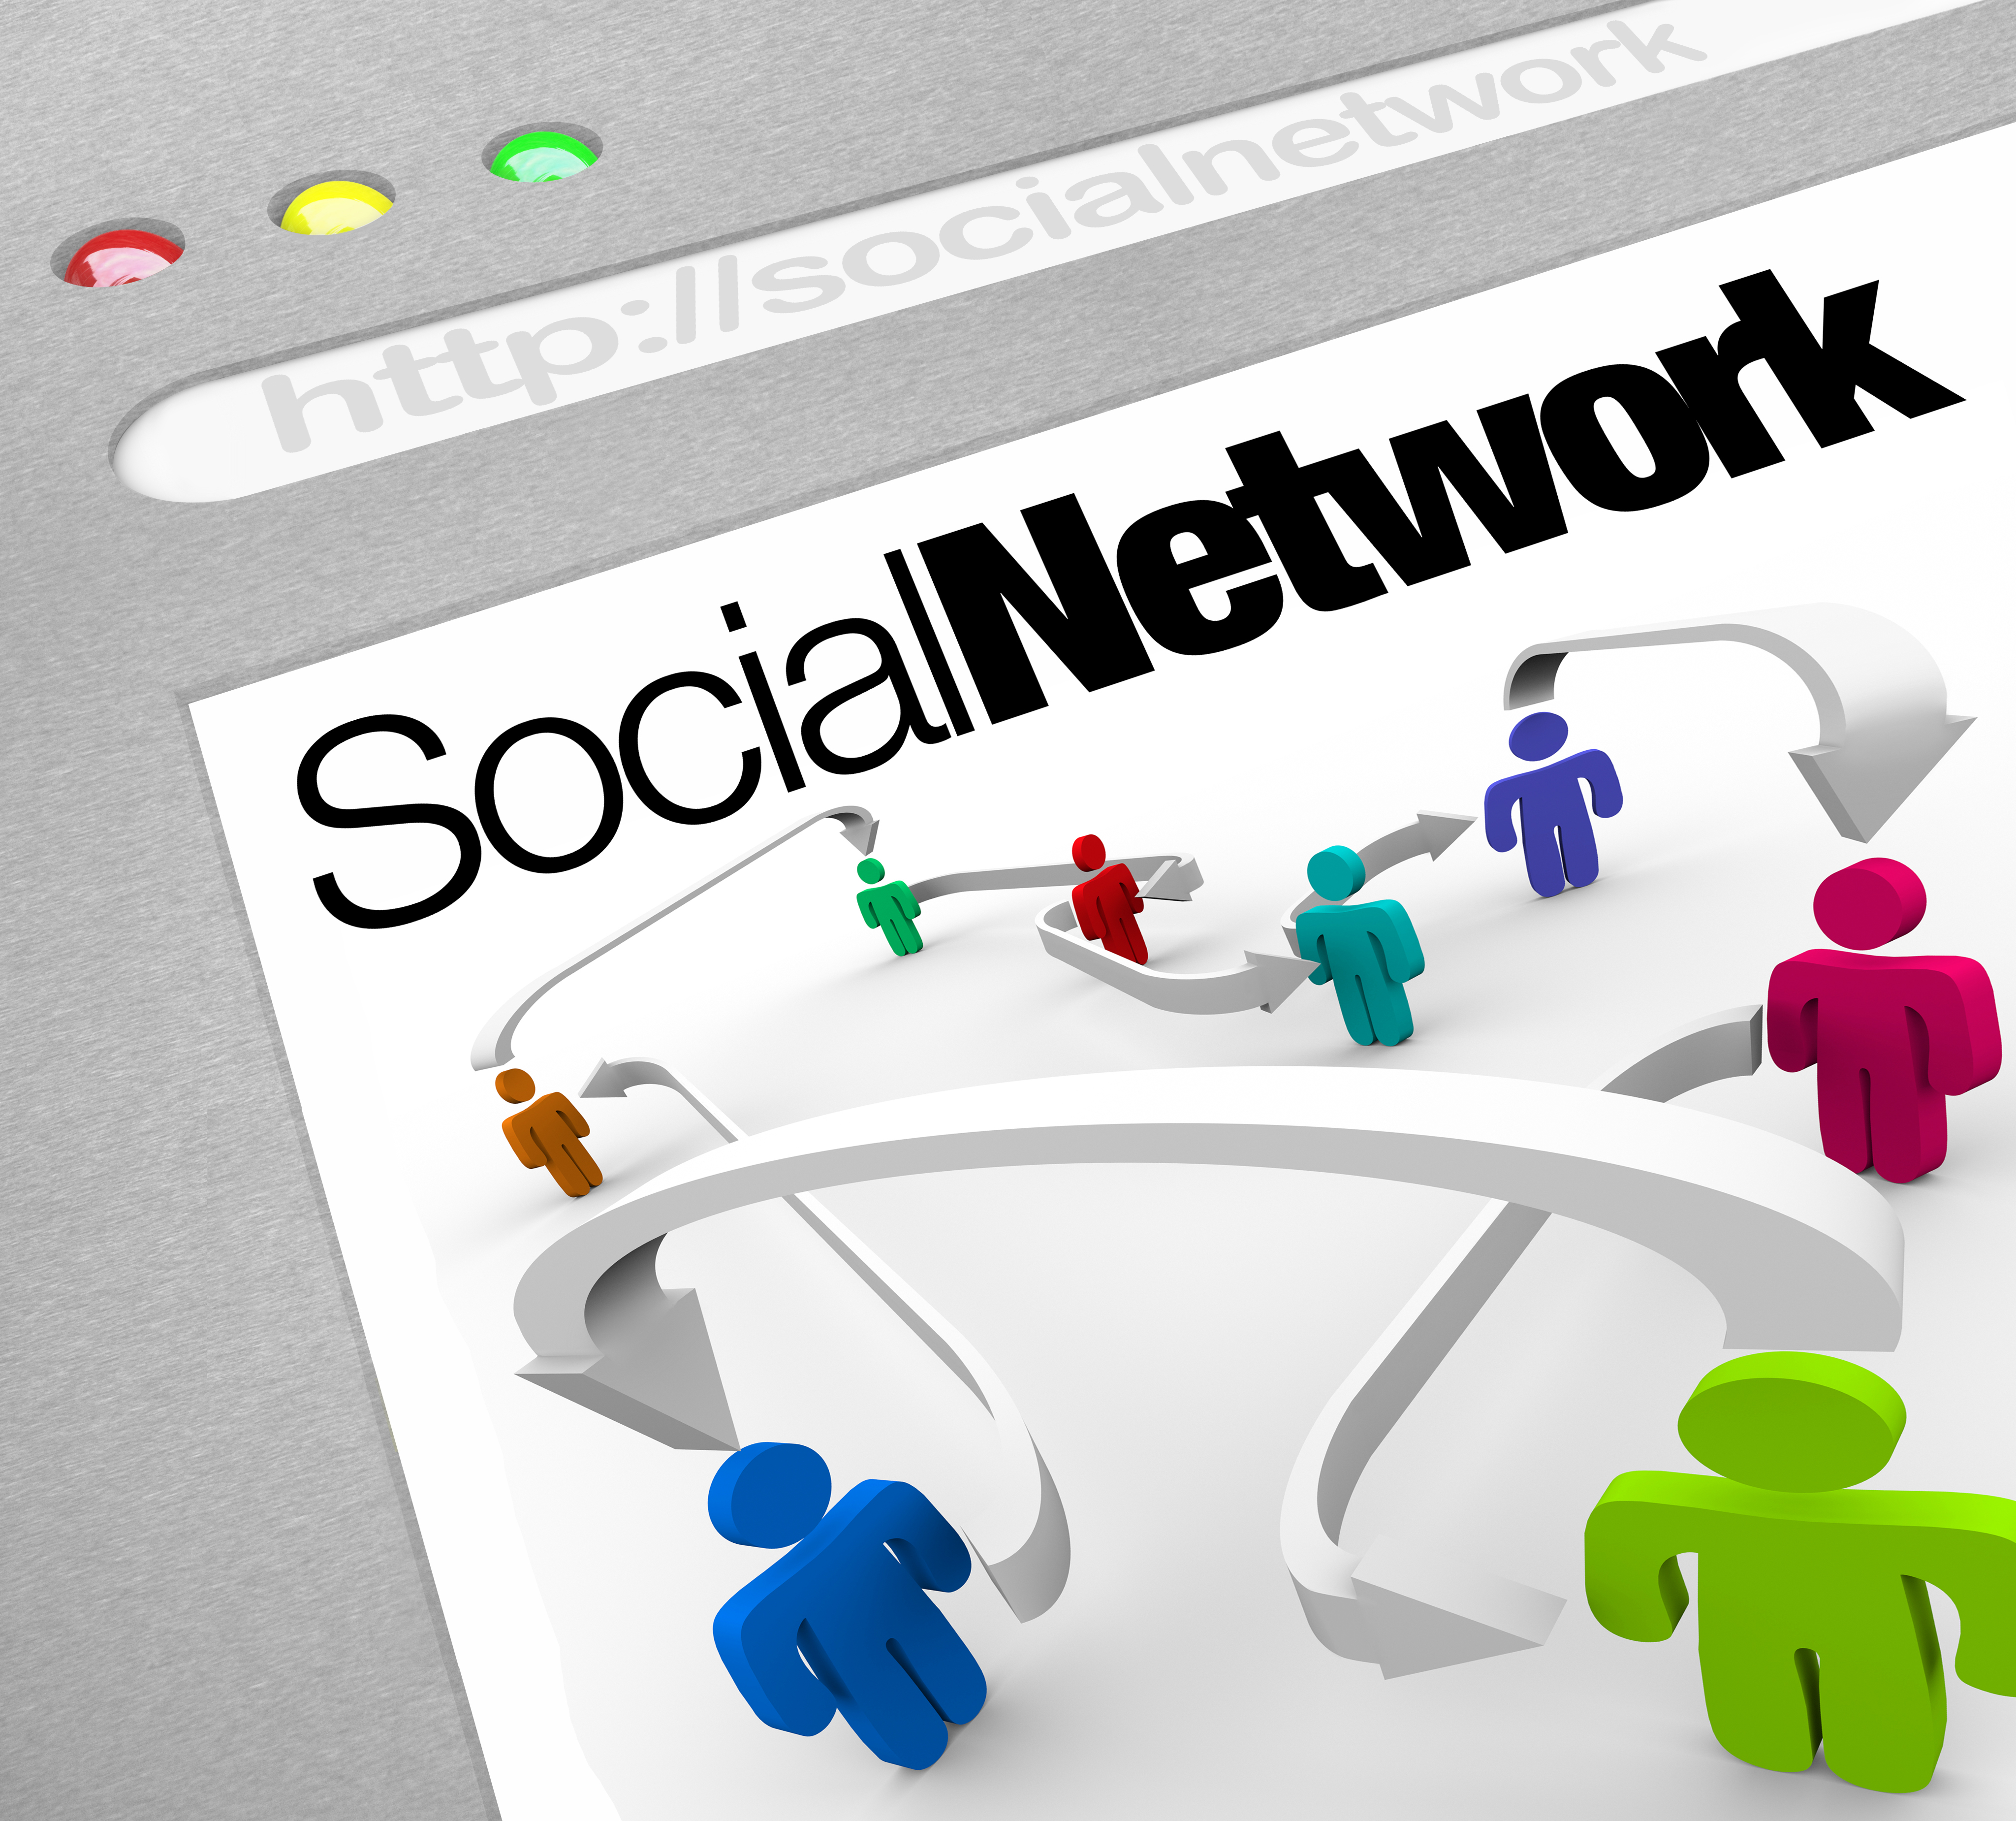 Richard Vanderhurst - Make A Move In Internet Marketing Implement These Excellent Tips